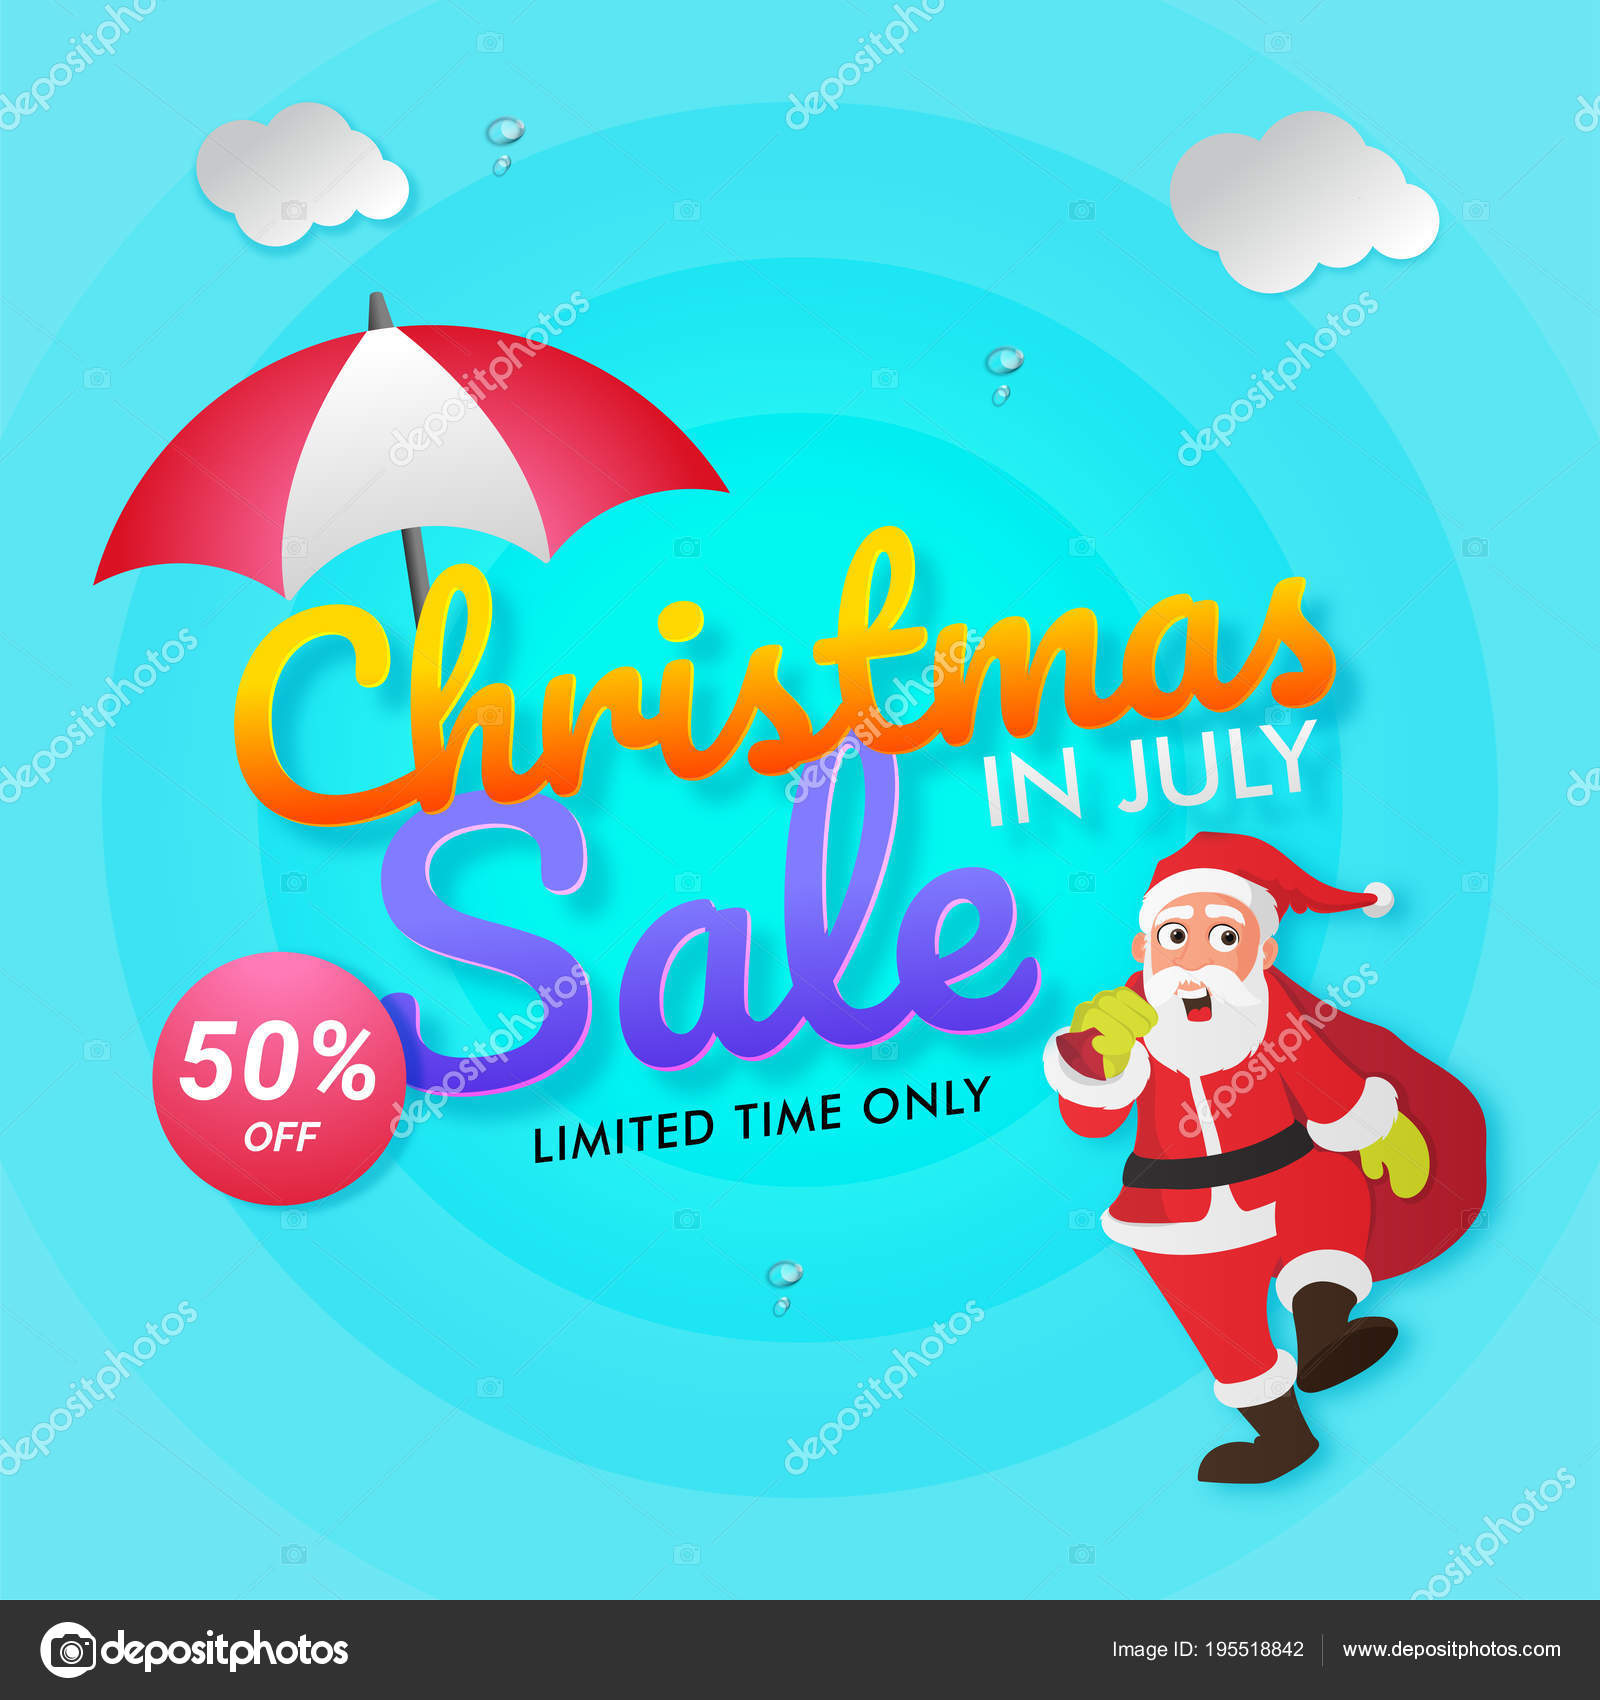 Christmas In July Santa Clipart.Christmas In July Sale Poster Banner Or Flyer Design With